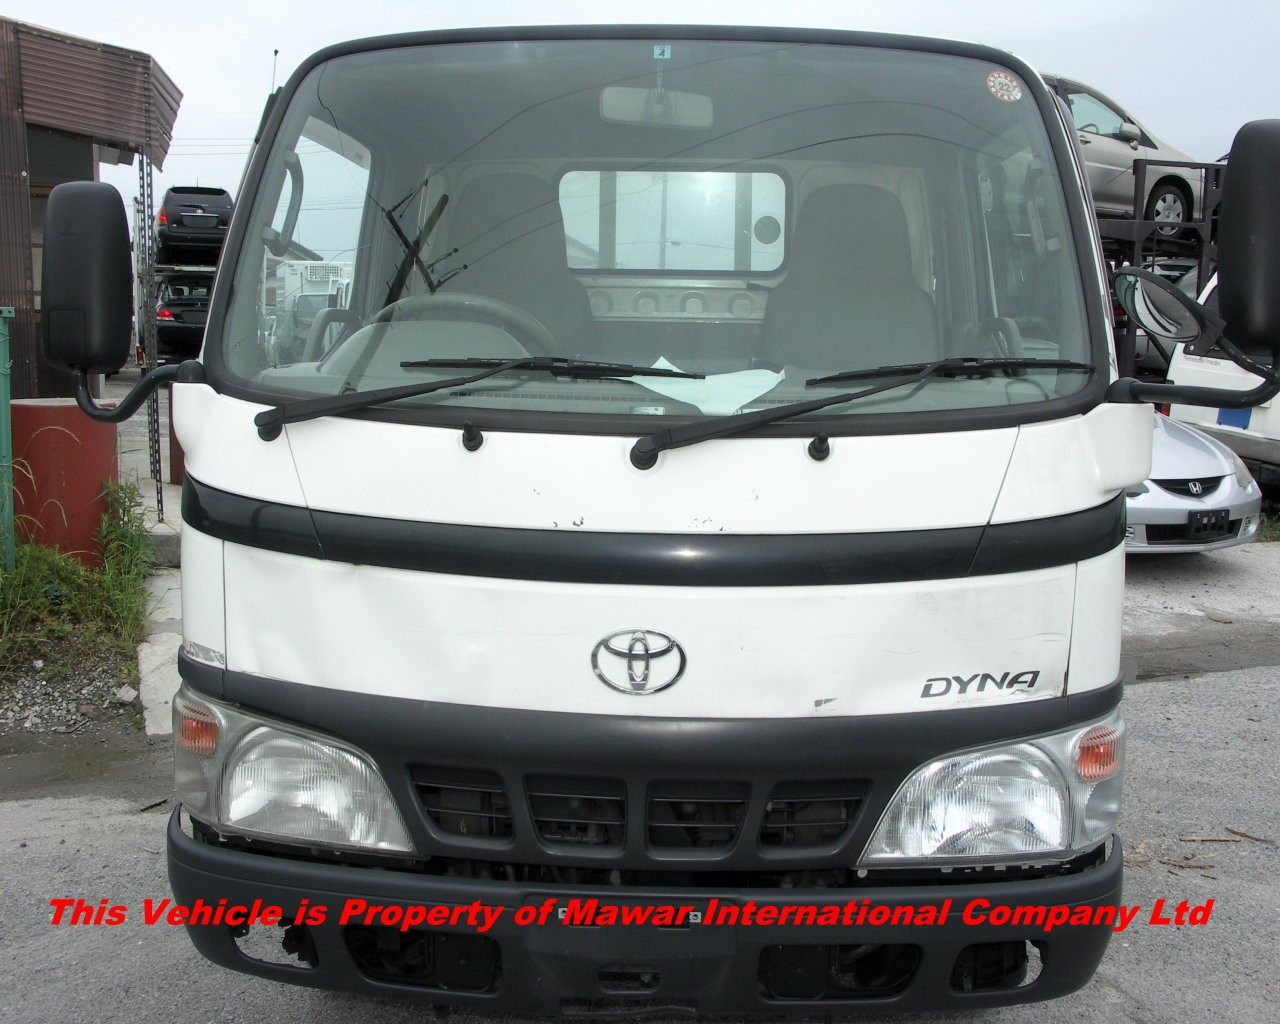 japanese used 2003 toyota dyna truck from japan-japancarpages